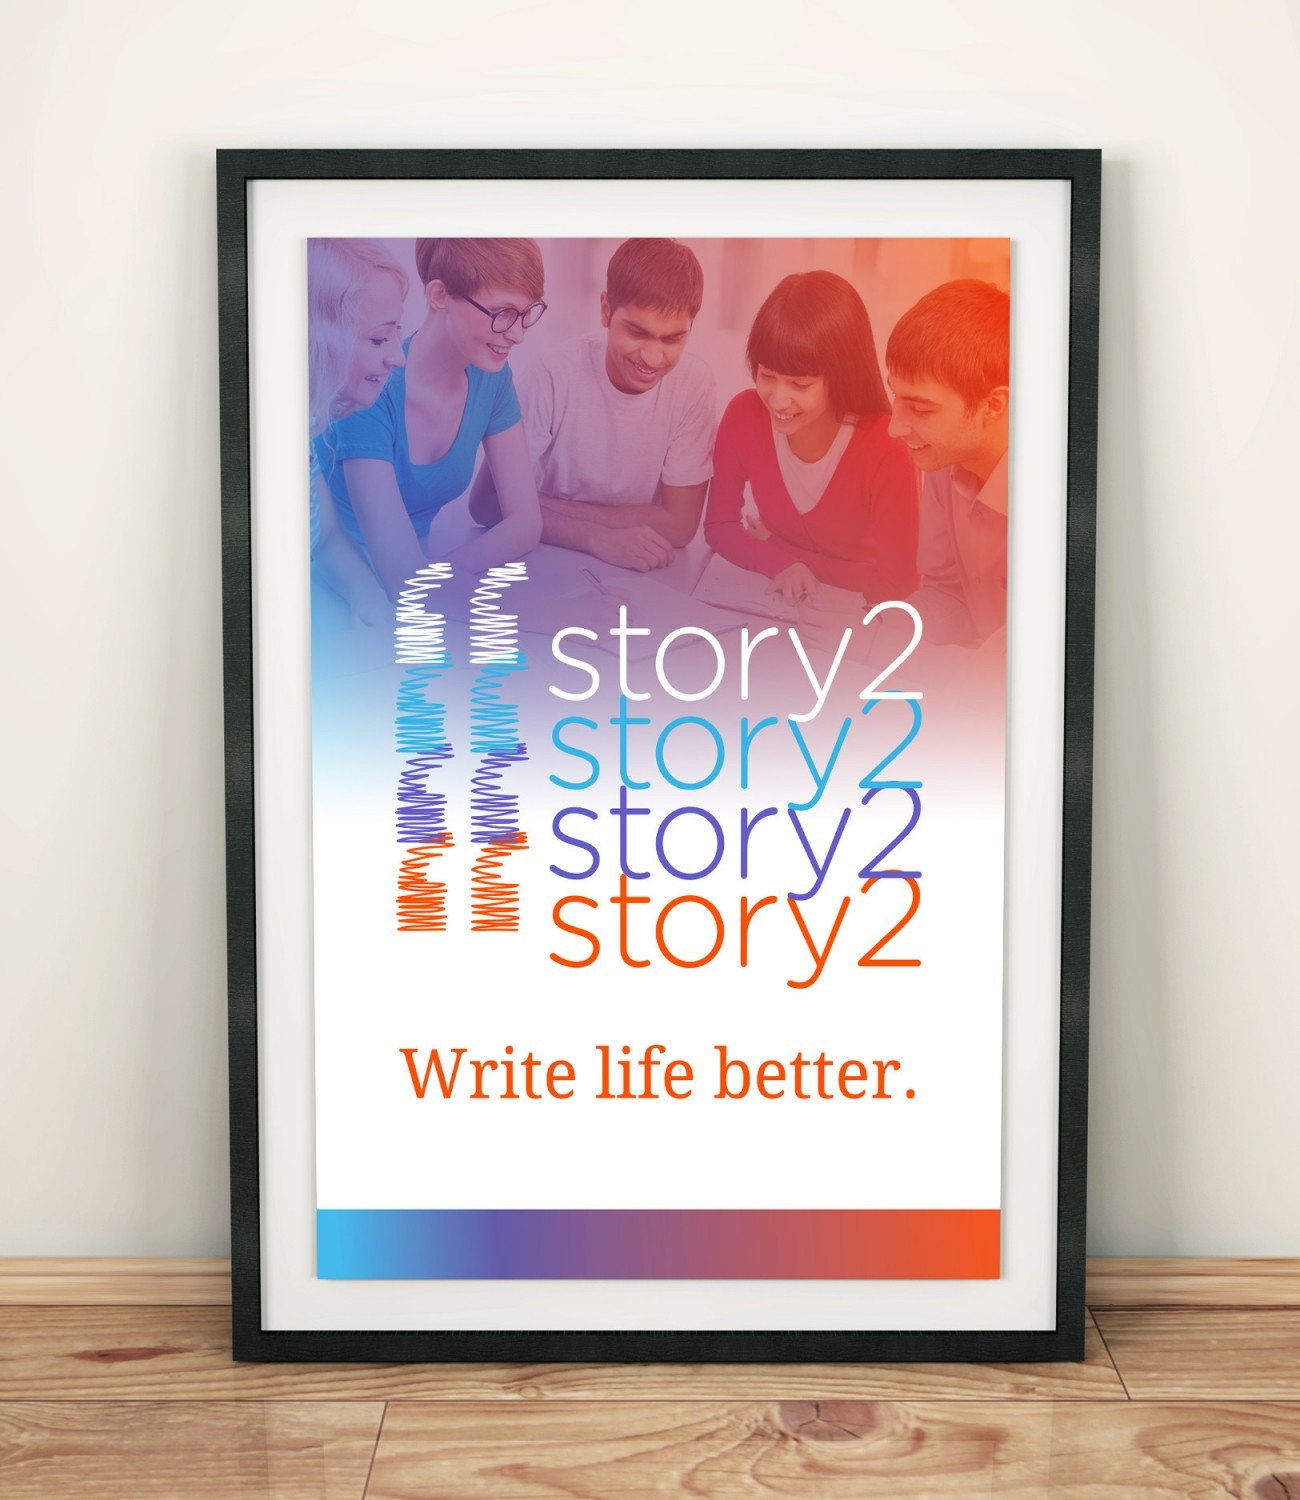 Story2 Poster, designed by Query Creative in the Hudson Valley